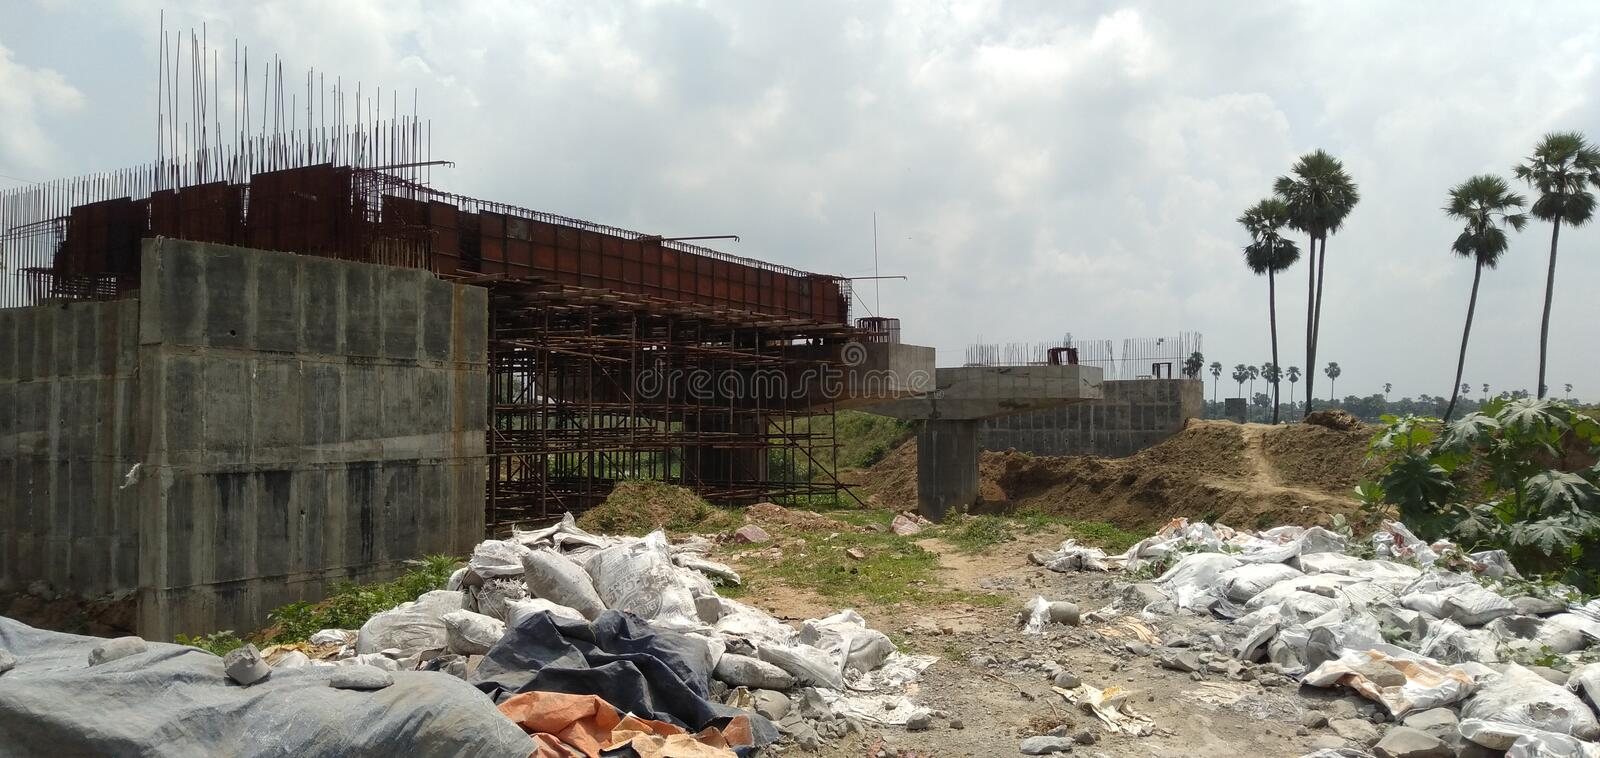 Construction of Bridge is underway in Biharsharif, India. This Photo is under construction fo a bridge in biharsharif. India. This is the scene of a village stock images